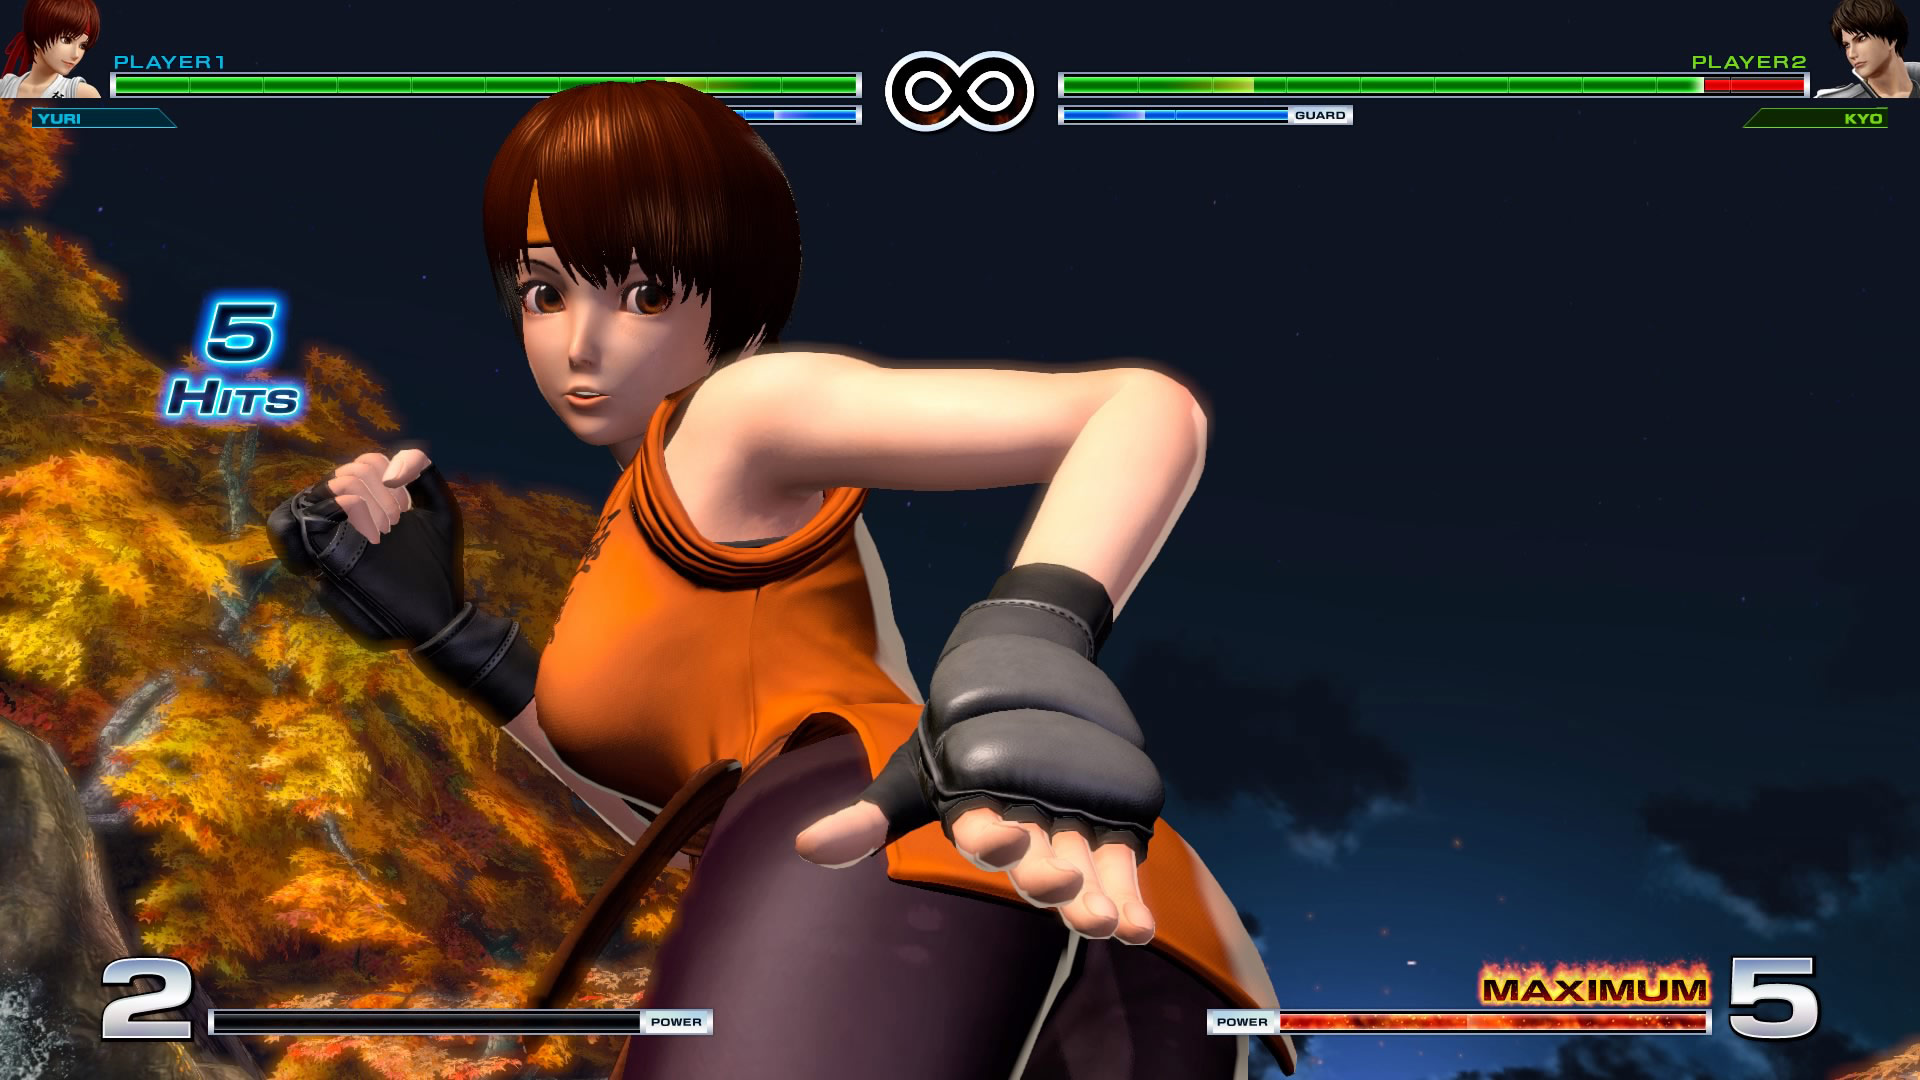 King of Fighters 14 1.10 graphics update 46 out of 60 image gallery